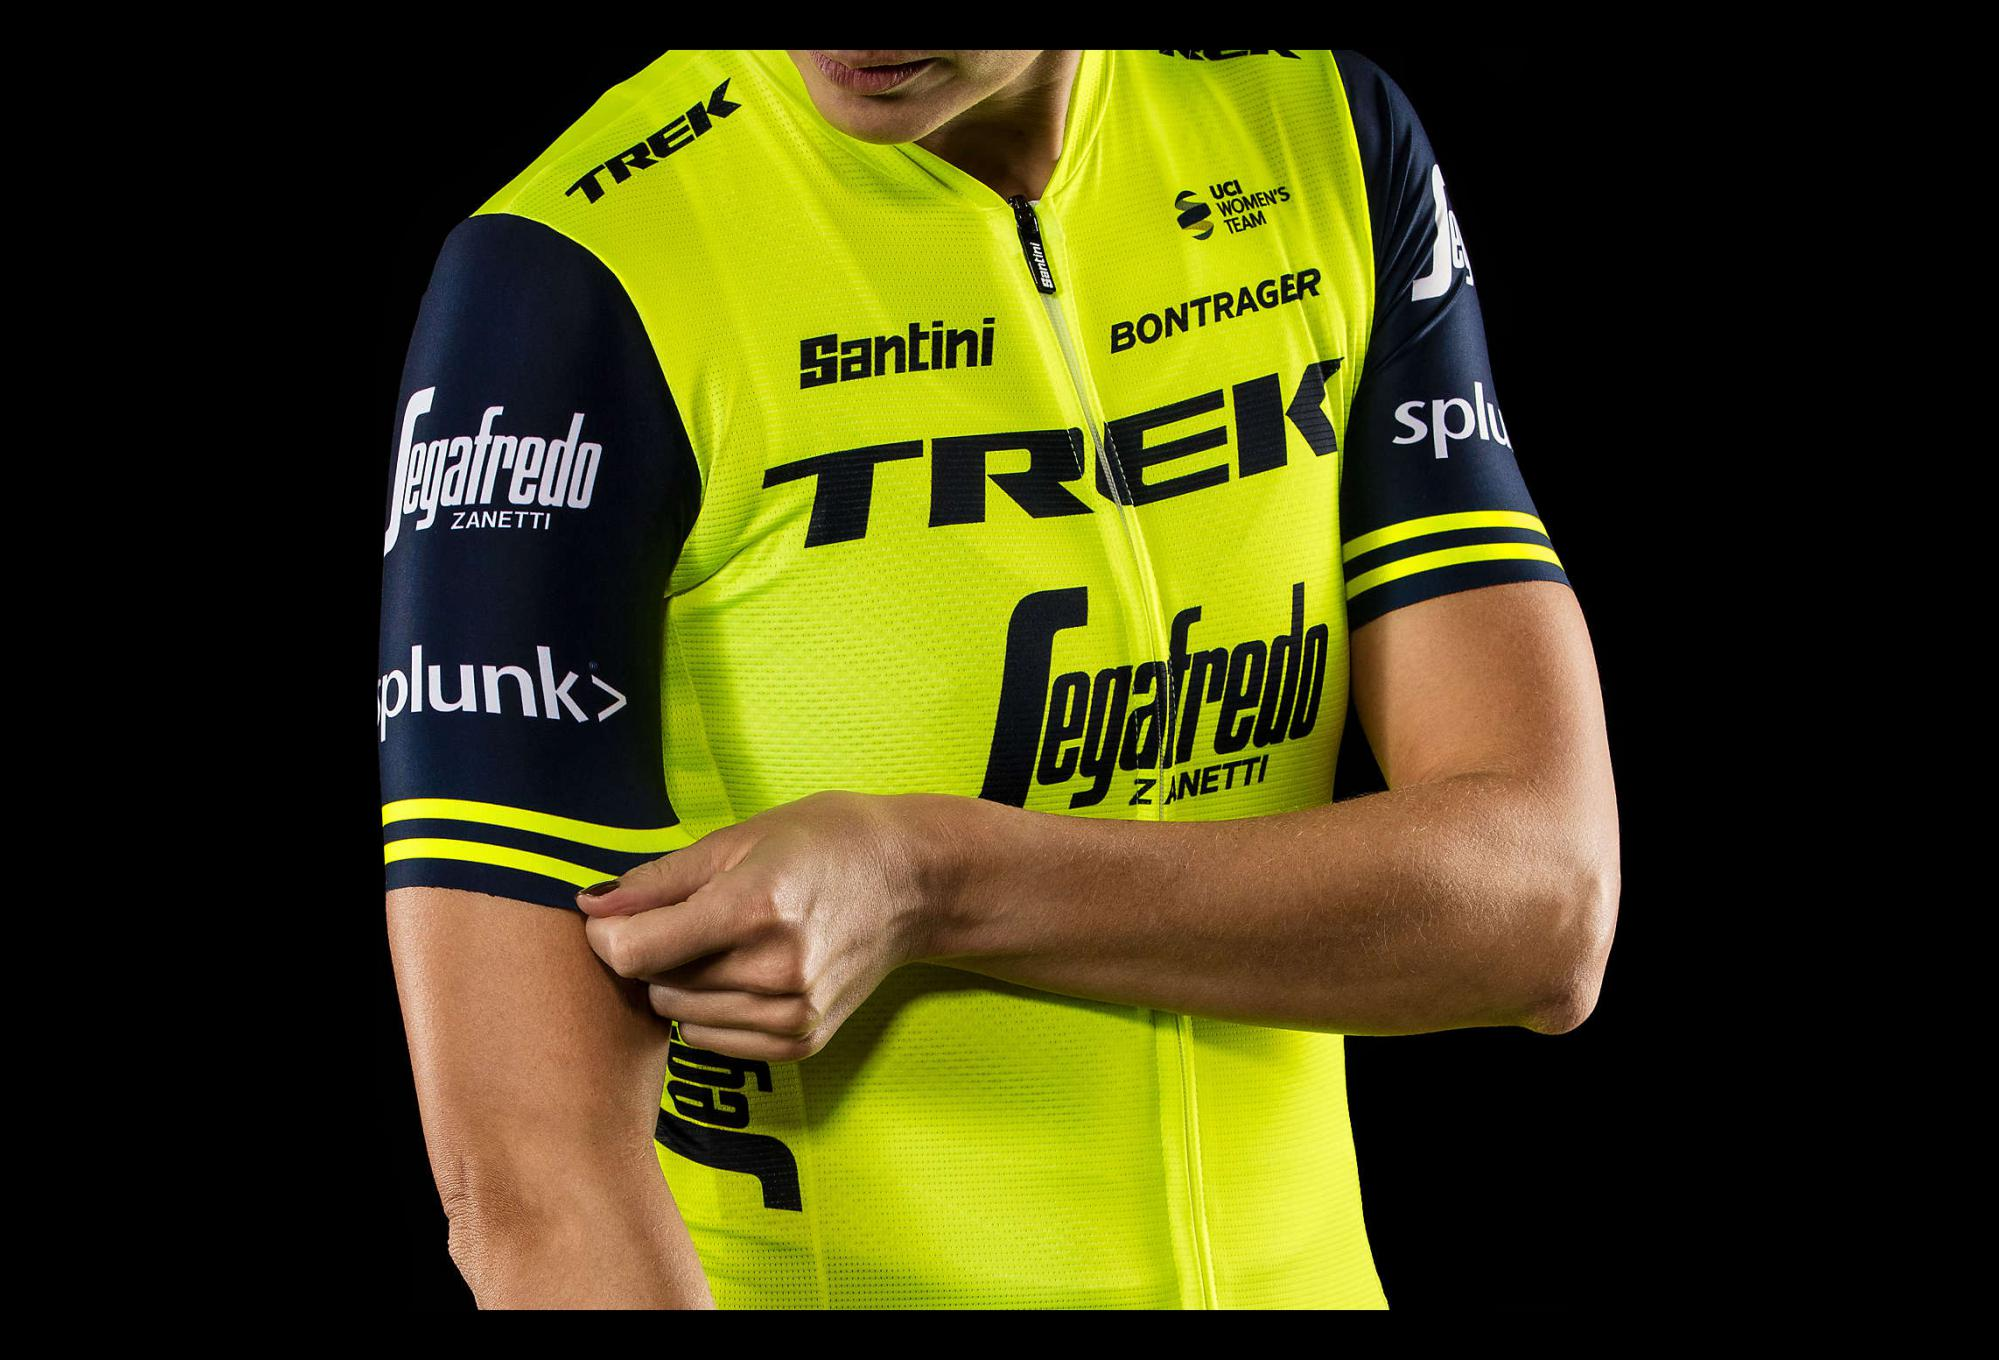 d9d459e2b Short Sleeves Jersey Women Trek by Santini Team Trek-Segafredo Replica  Yellow